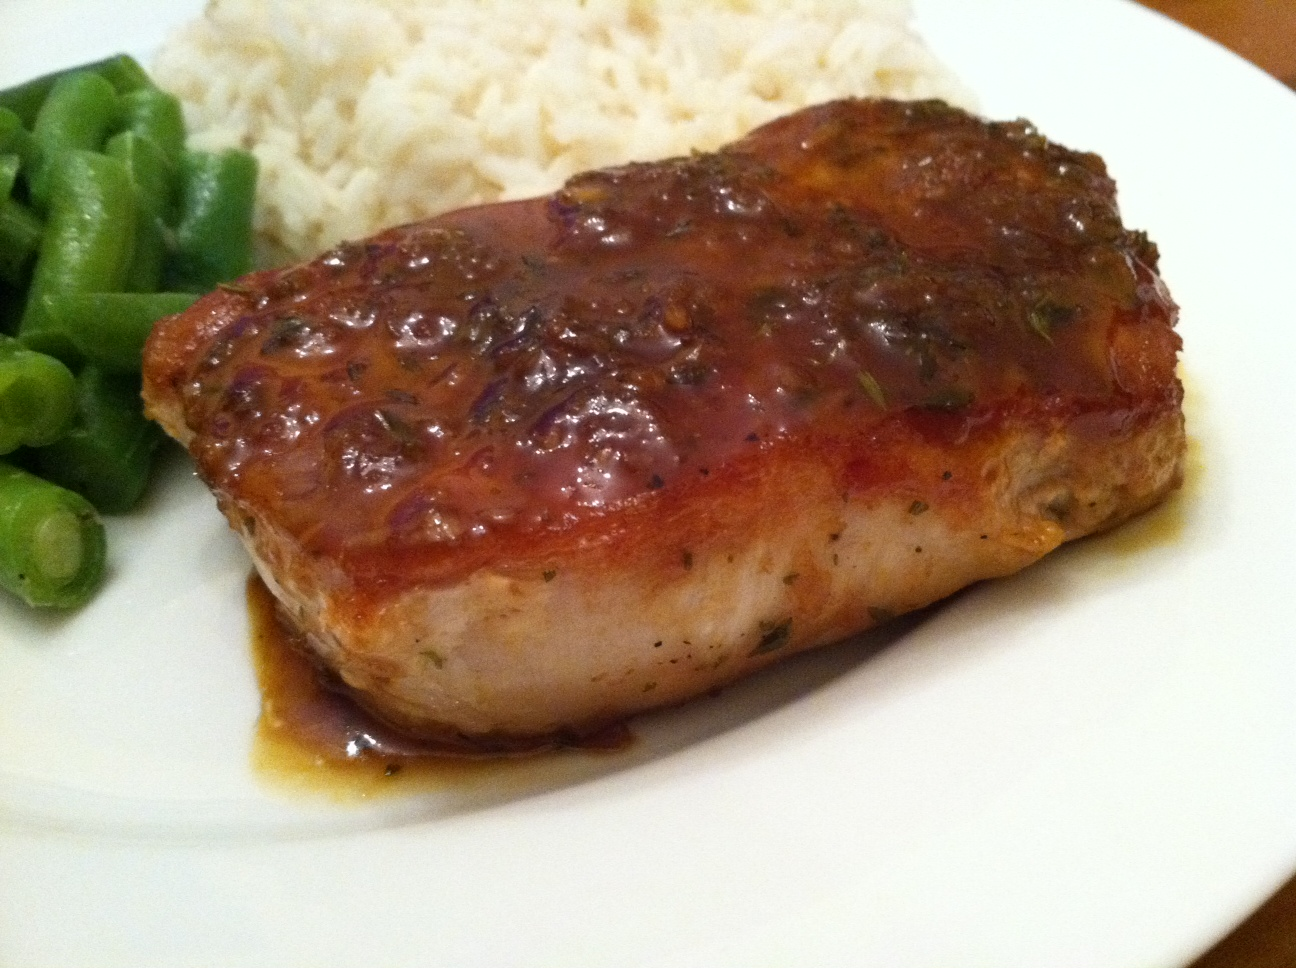 Taste of Home Cooking: Pork Chops with Orange-Soy Sauce